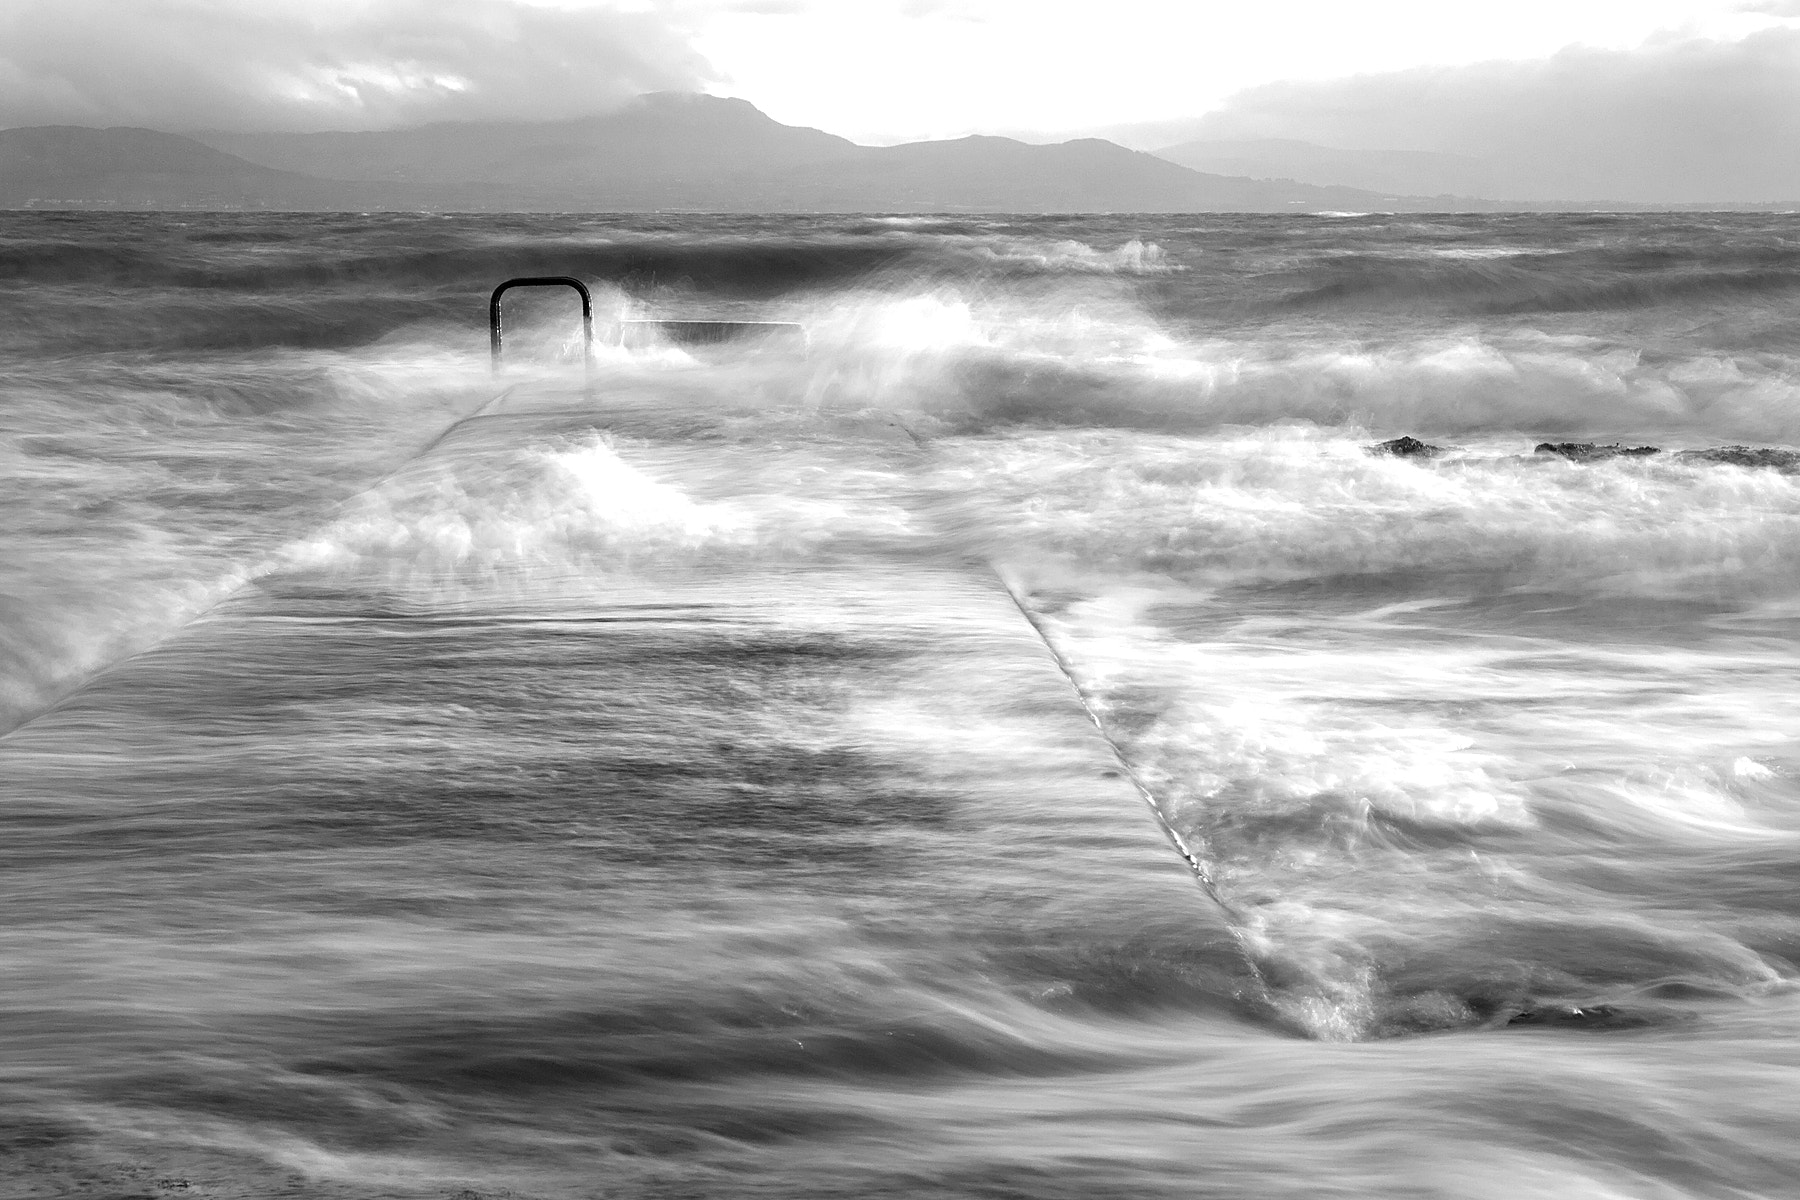 Photograph Rough Sea by Barry McGreevy on 500px